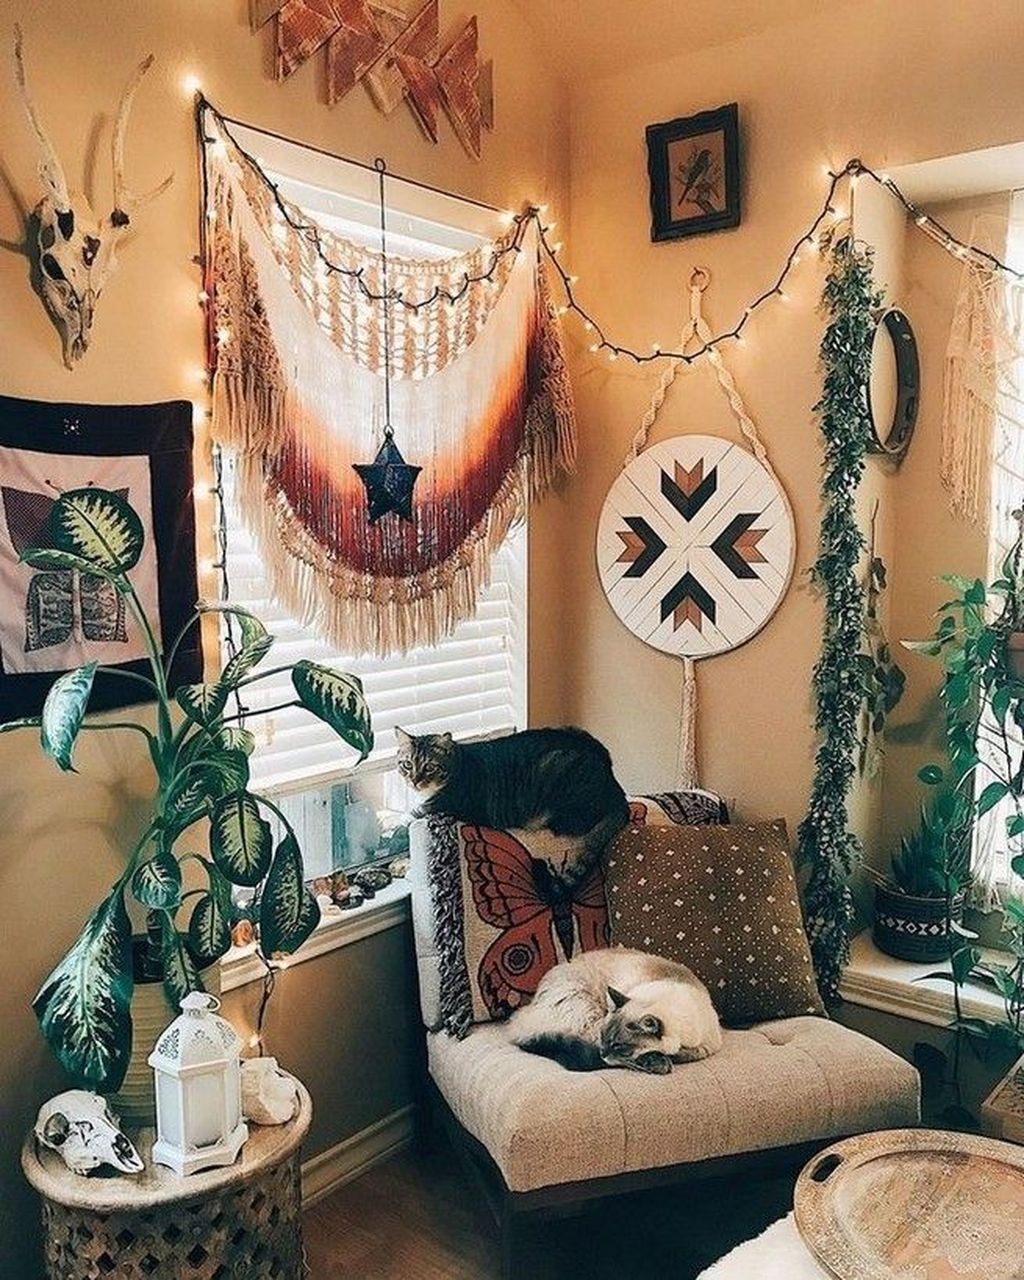 Stunning Hippie Room Decor Ideas You Never Seen Before 21